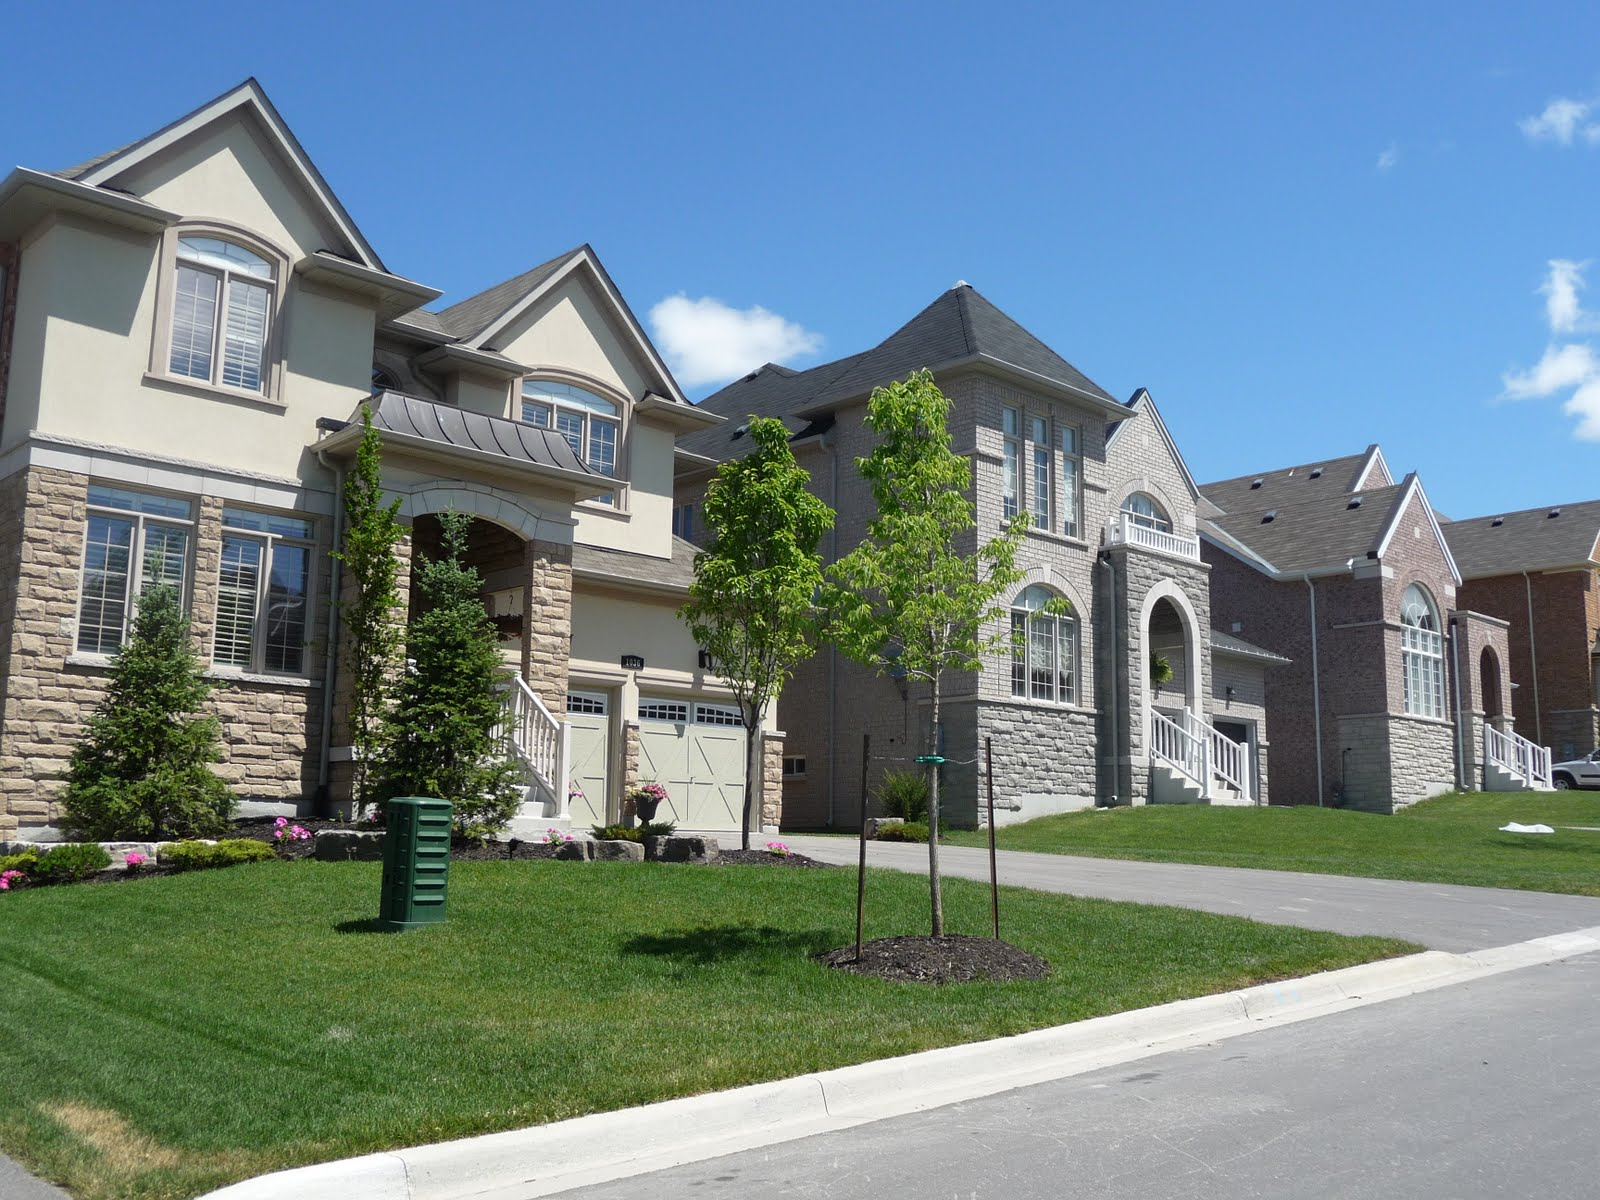 Toronto neighbourhood guide toronto suburbs york region Home estate